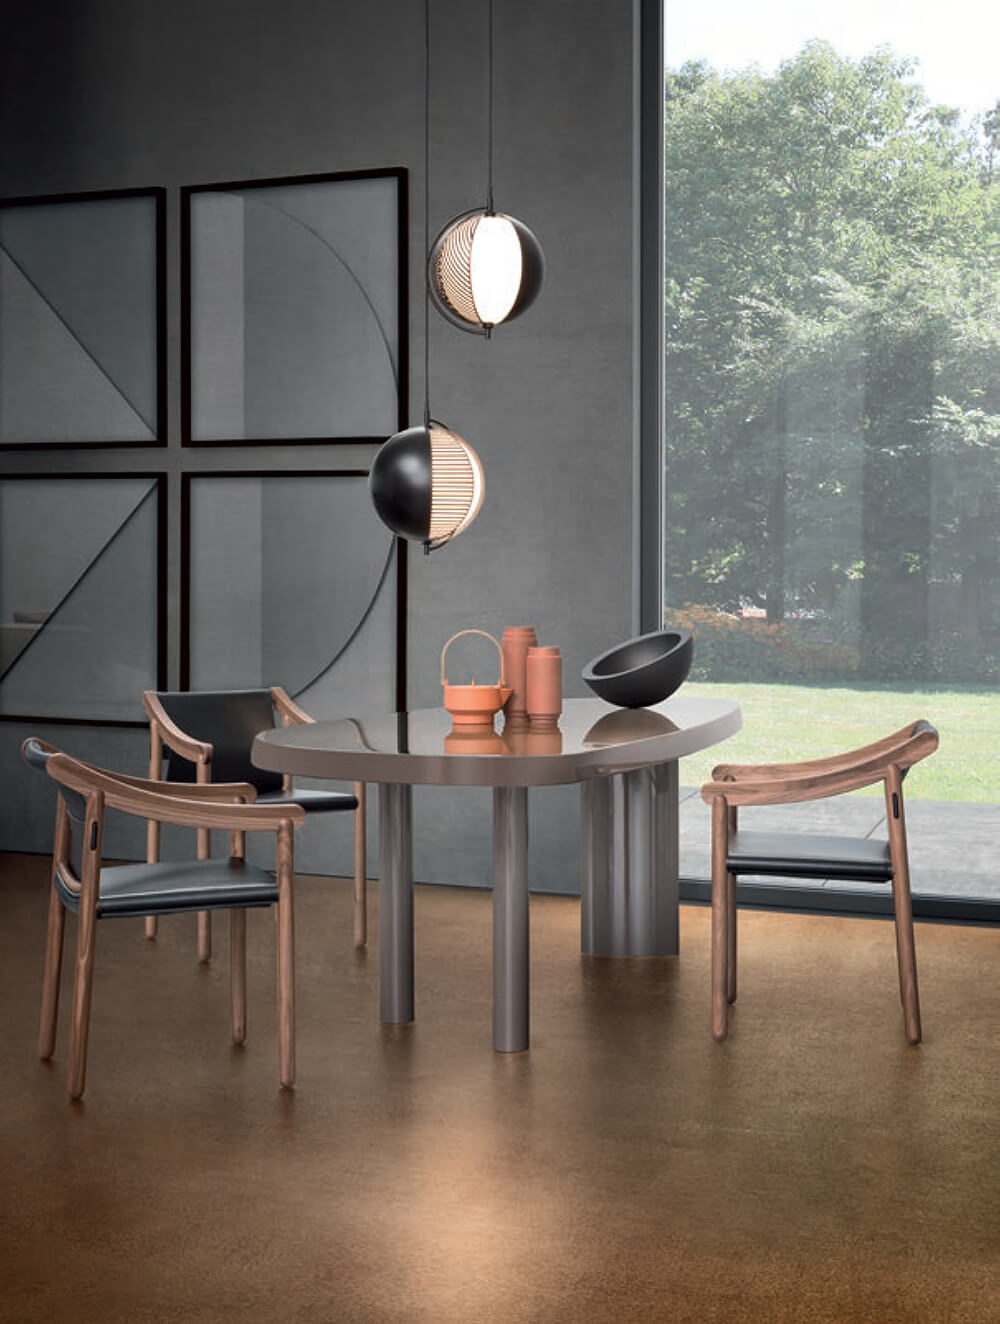 Oblure 'Mondo' Lamp featured by Cassina